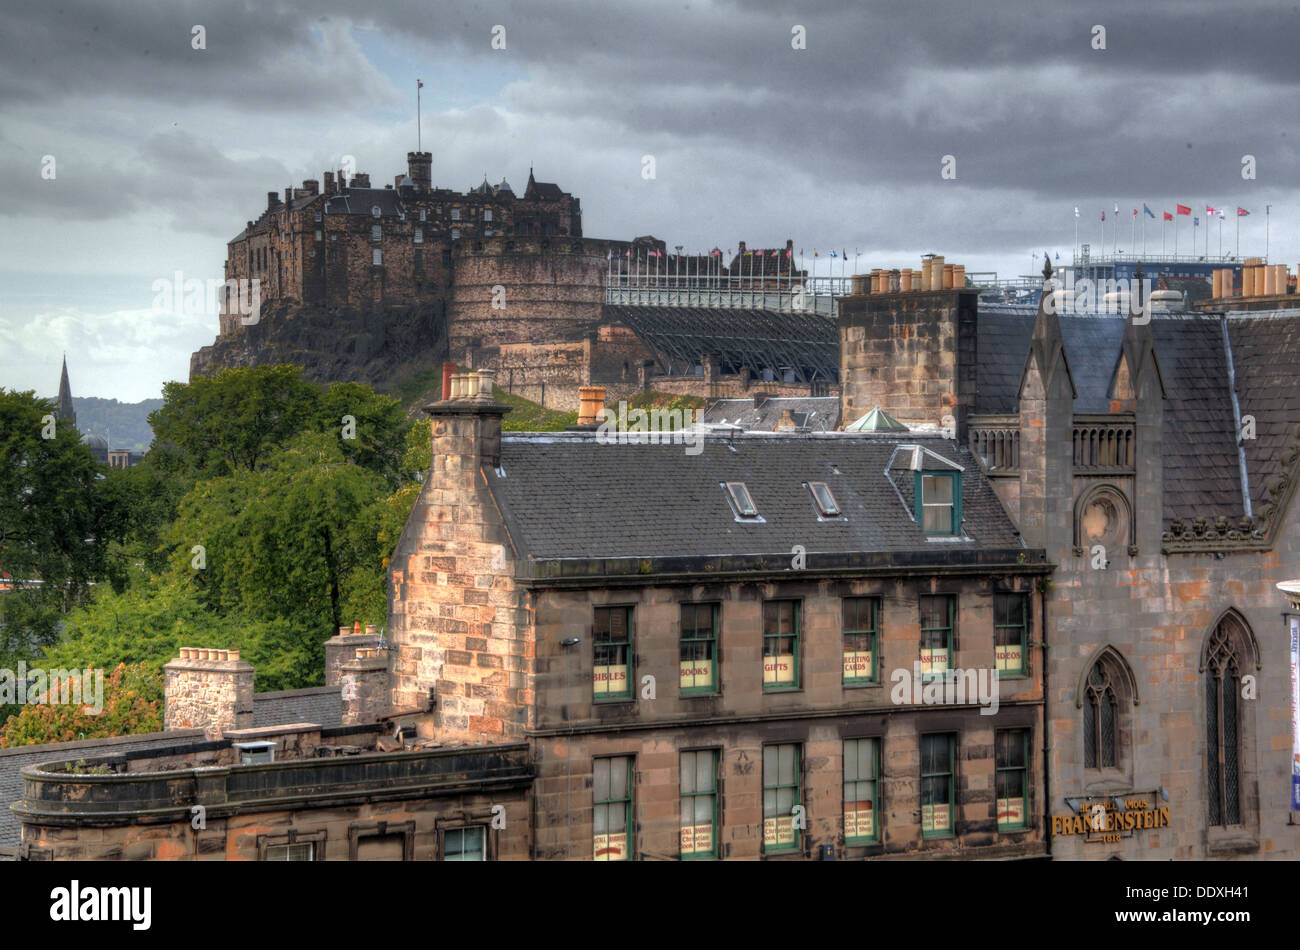 Stormy day at Edinburgh Castle, The Mound, Edinburgh, Scotland, EH1 - Stock Image